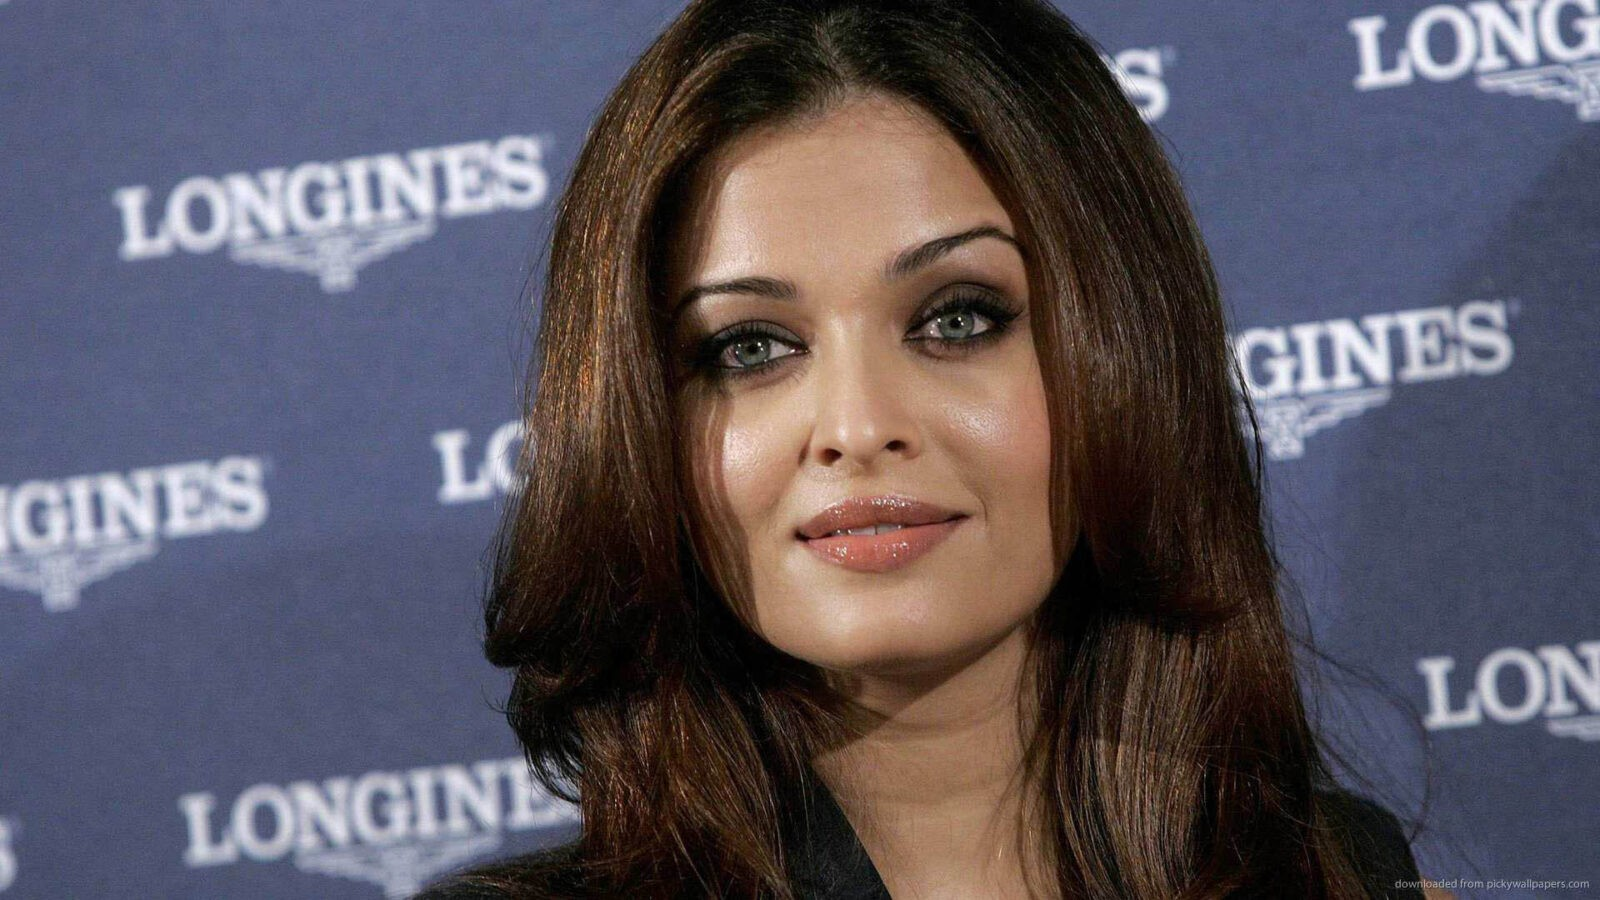 40 Aishwarya Rai Bachchan Wallpapers Hd Download